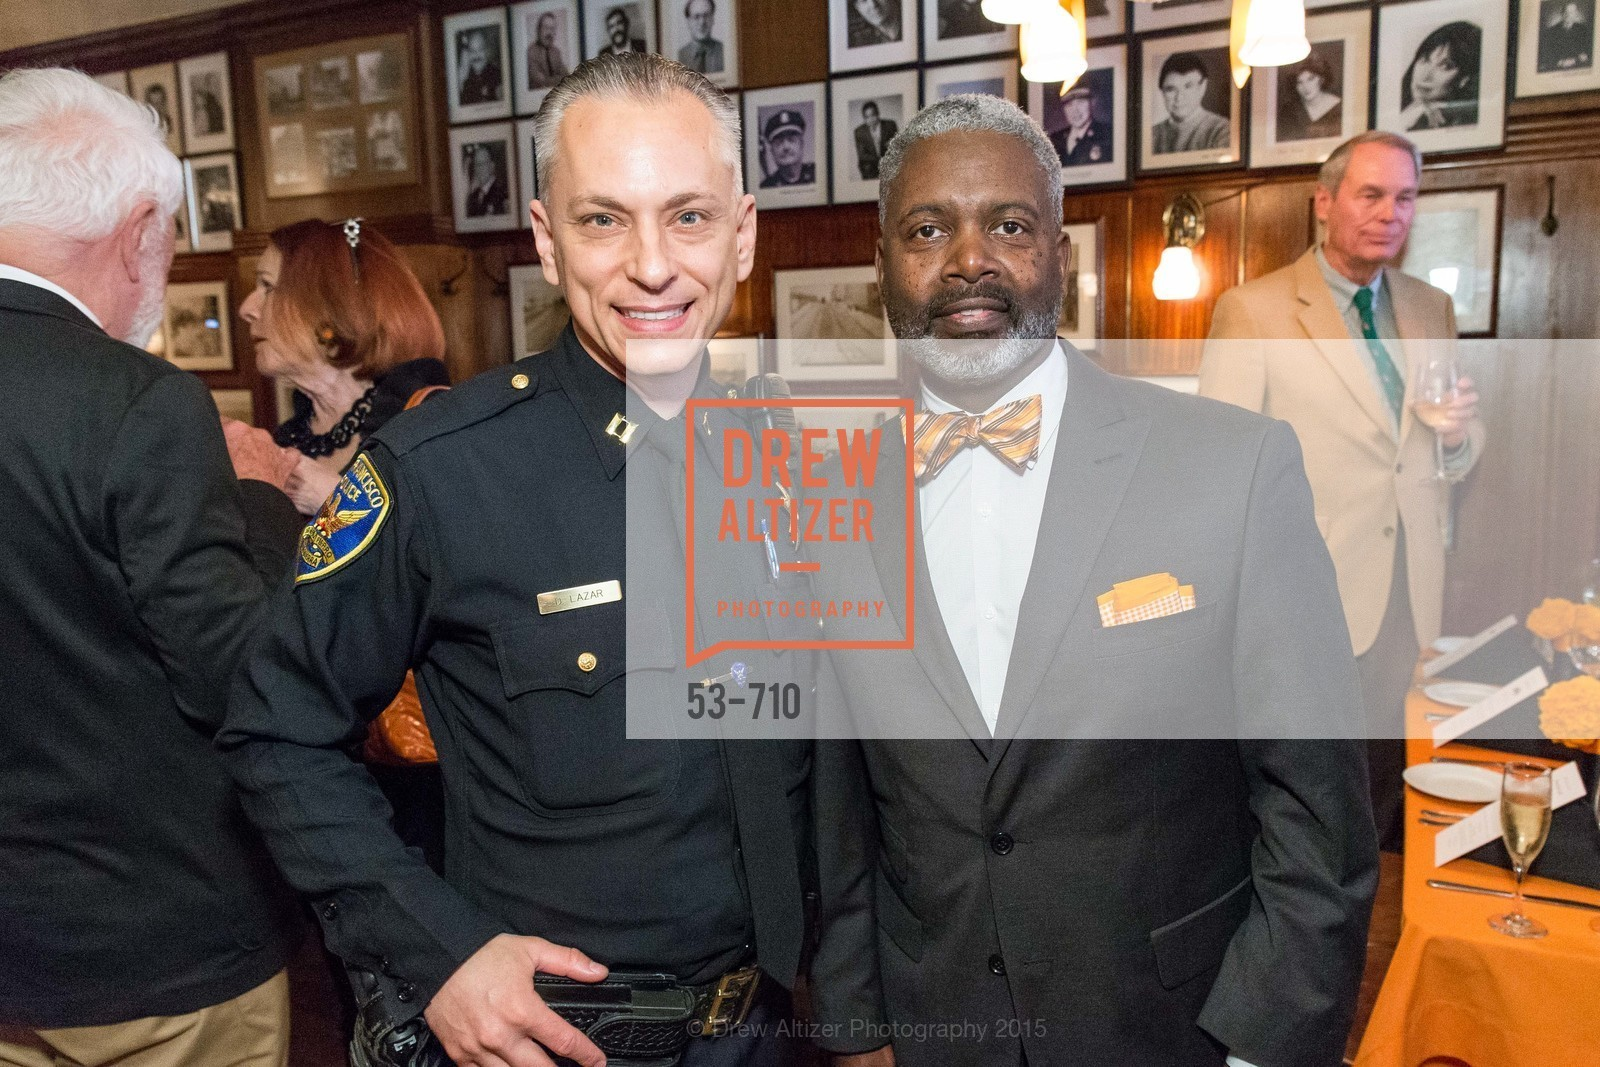 David Lazar, Tommie Moon, 3-RING LUNCH CELEBRATION Honoring RENEL BROOKS-MOON, US, June 8th, 2015,Drew Altizer, Drew Altizer Photography, full-service agency, private events, San Francisco photographer, photographer california